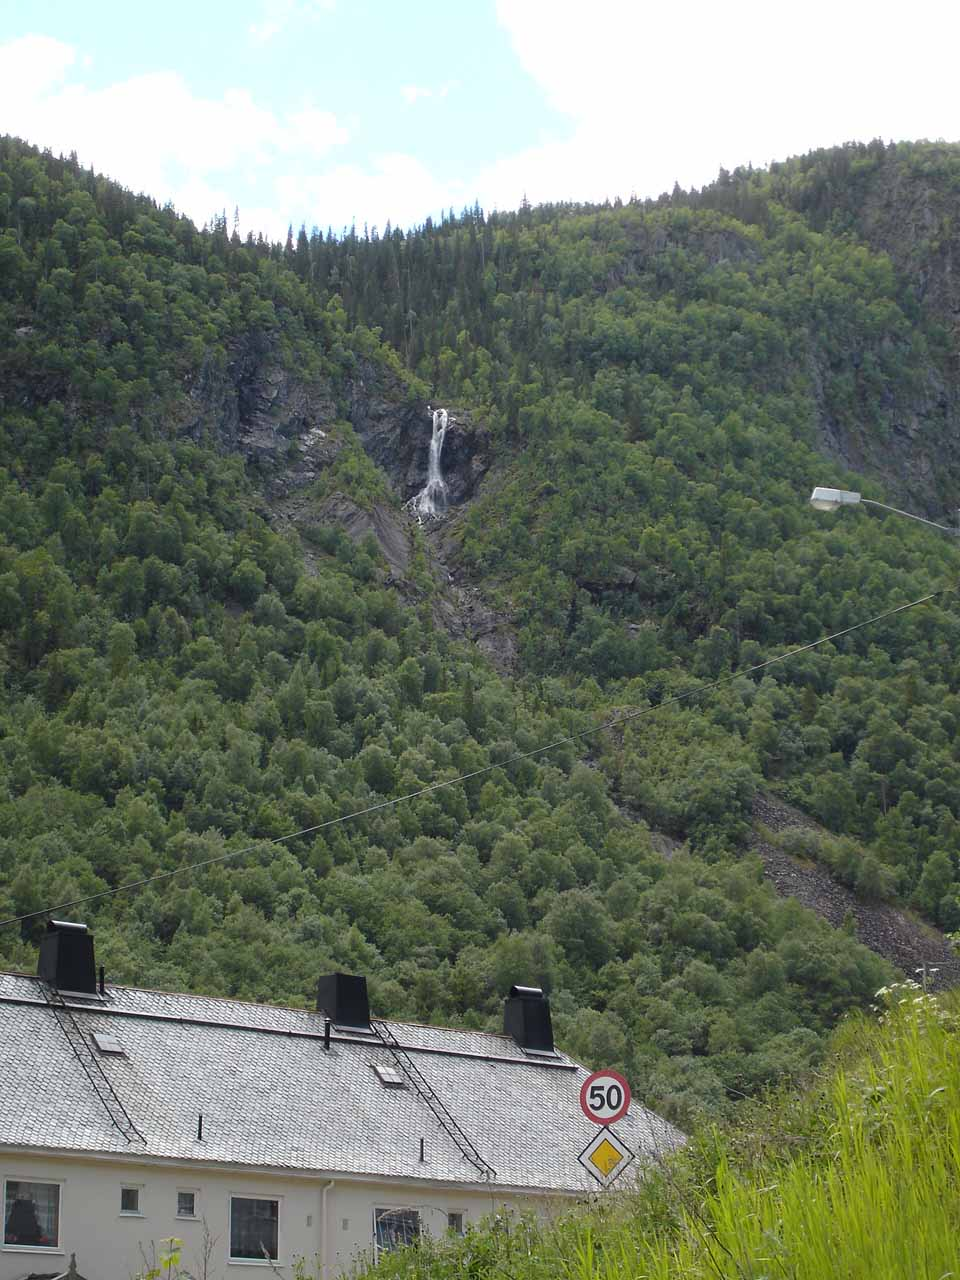 Some other waterfall seen from the town of Rjukan